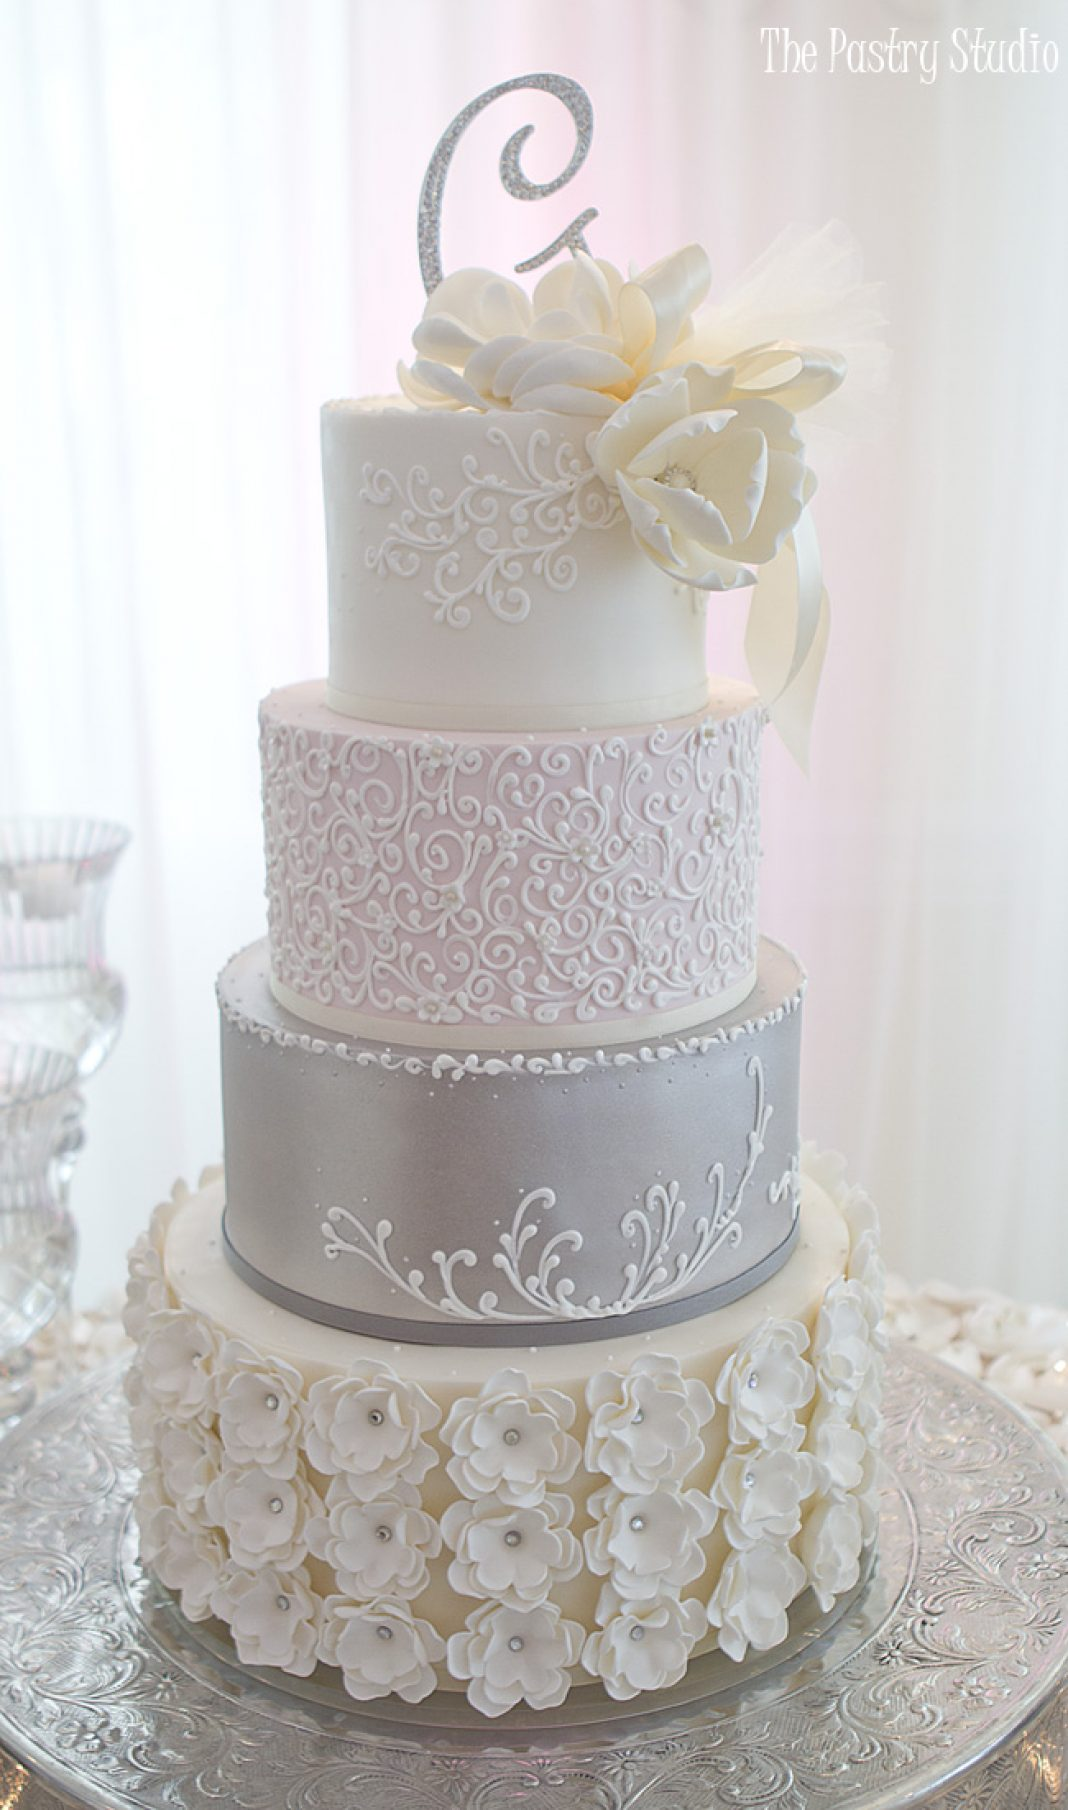 The Pastry Studio creates the most creative and delicious cakes. Featured here is our four tiered pewter and pink petal cake design. Call the Pastry Studio for your wedding or special event.